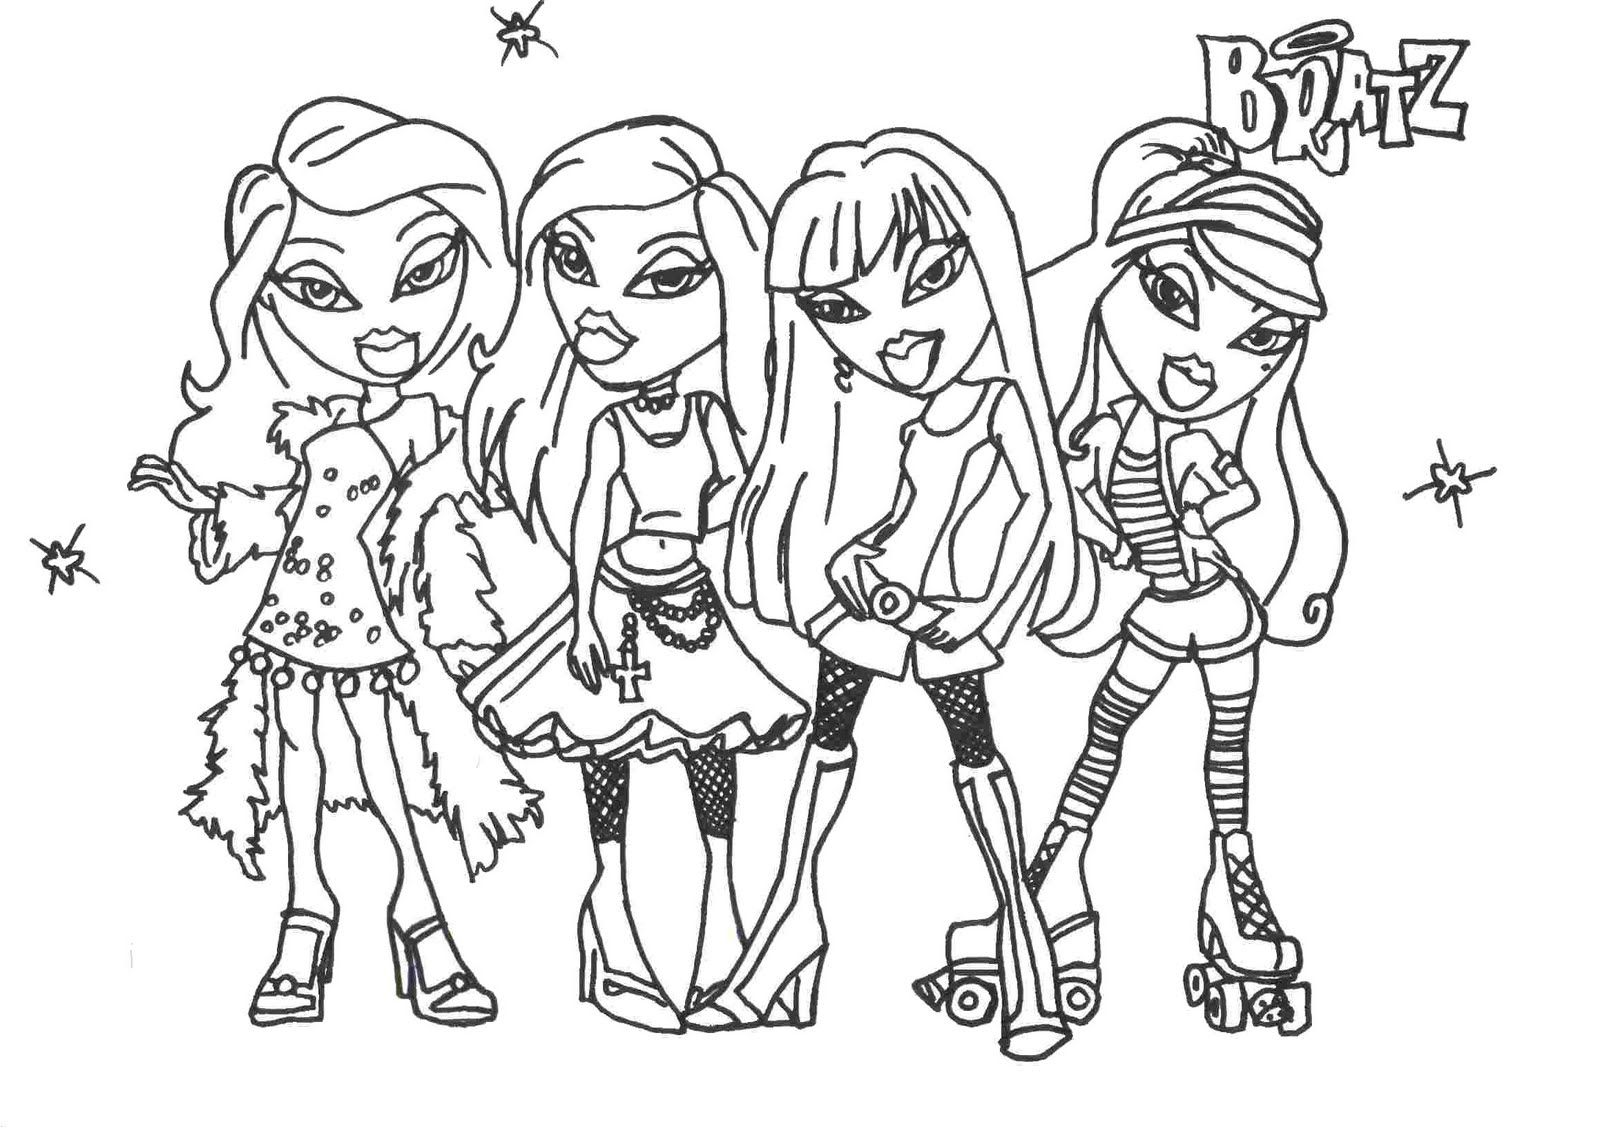 Free coloring disney princess pages - Bratz Glamor Girls Coloring Pages Disney Princess Coloring Pages